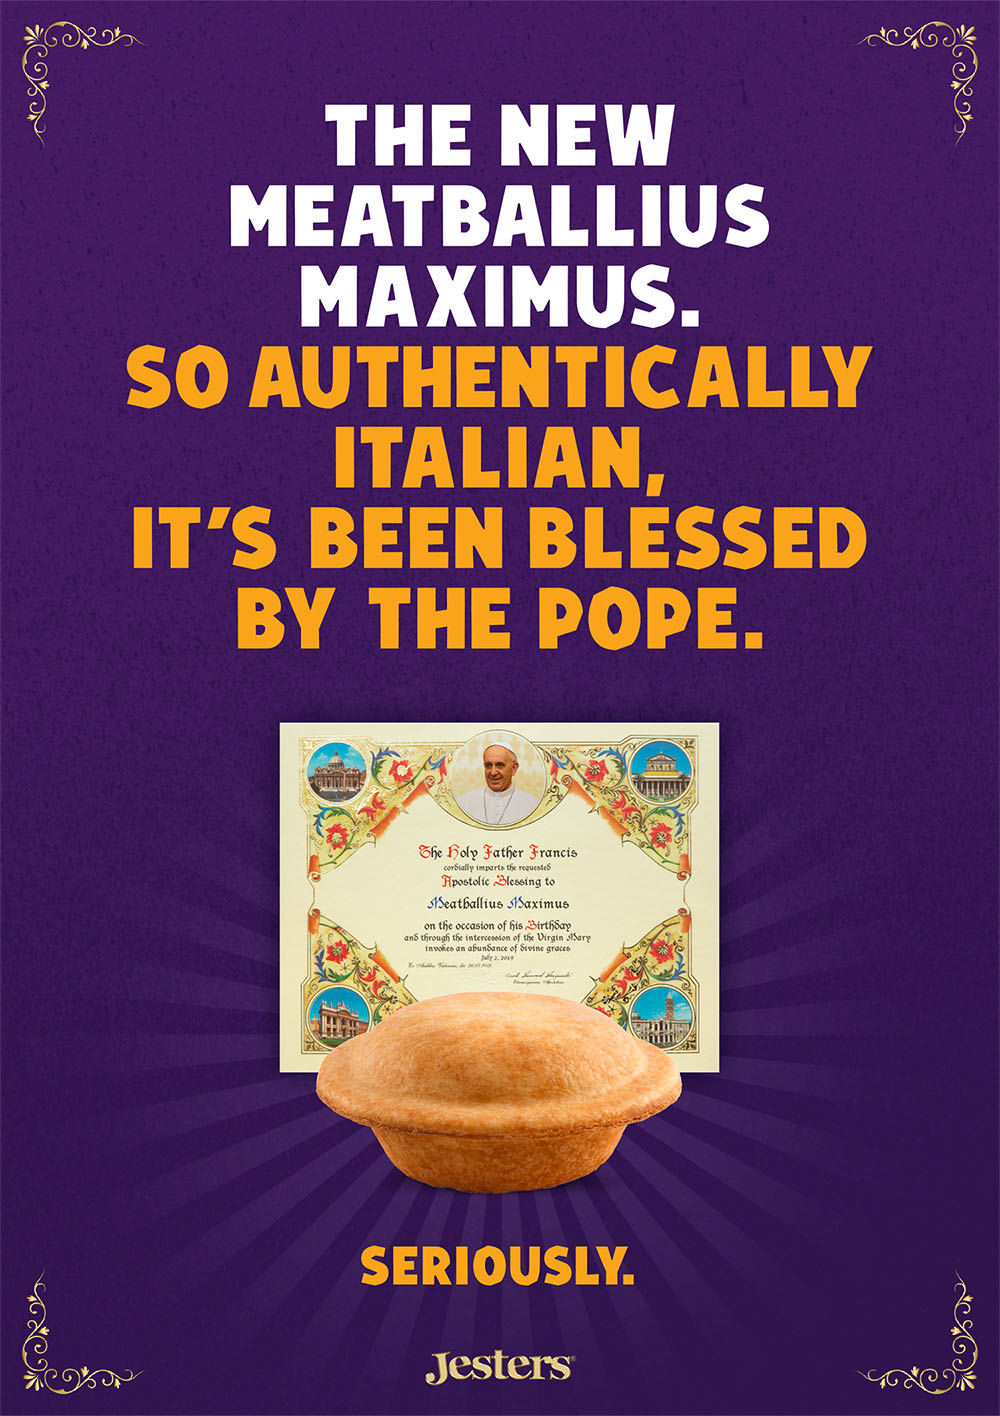 Jesters pie receives Apostolic Blessing from Pope Francis in new campaign via Meerkats, Perth